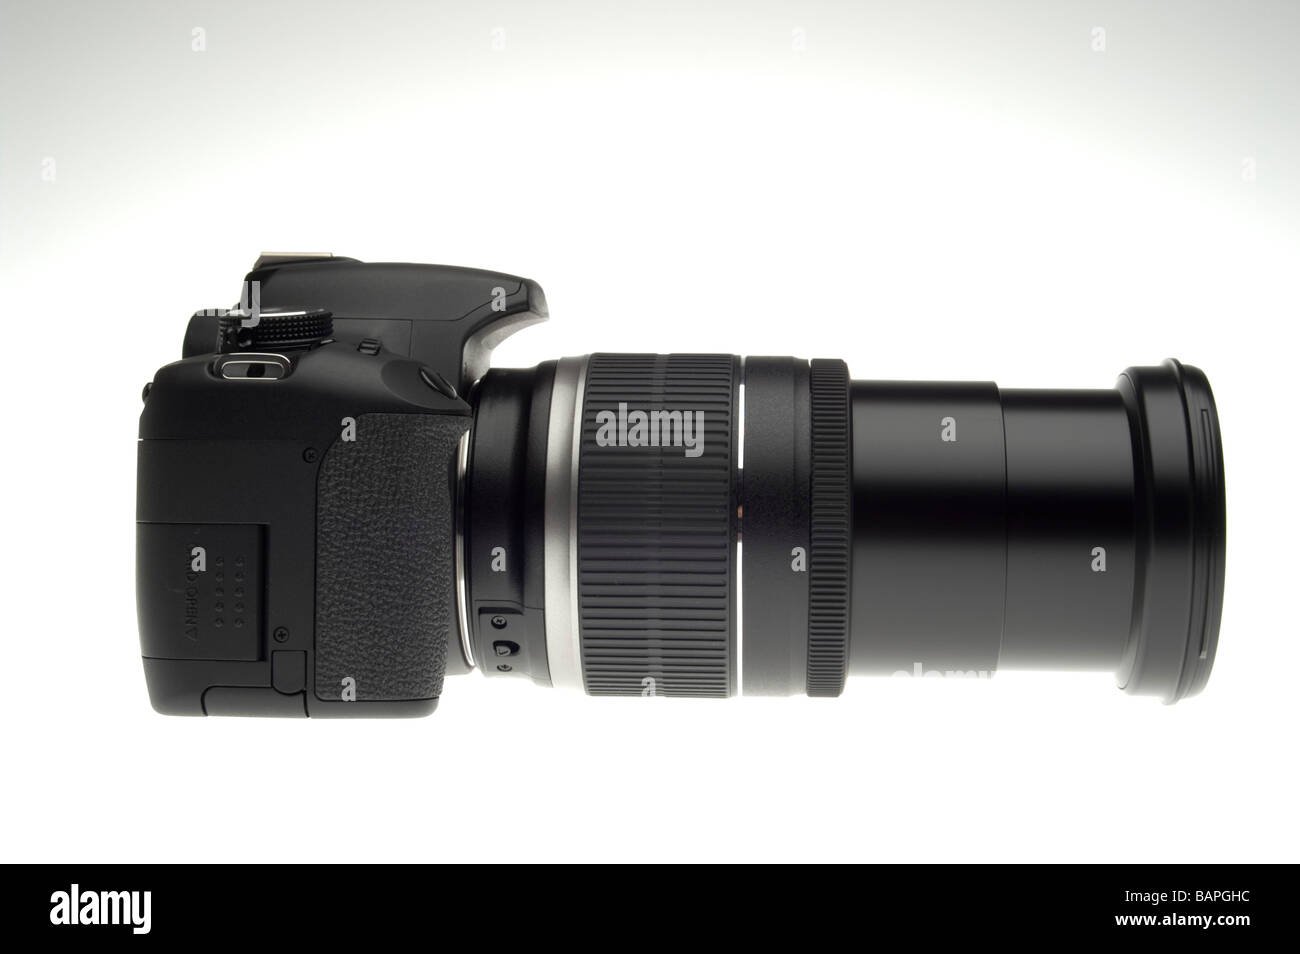 Digital SLR camera Canon EOS 500D HD video with zoom lens